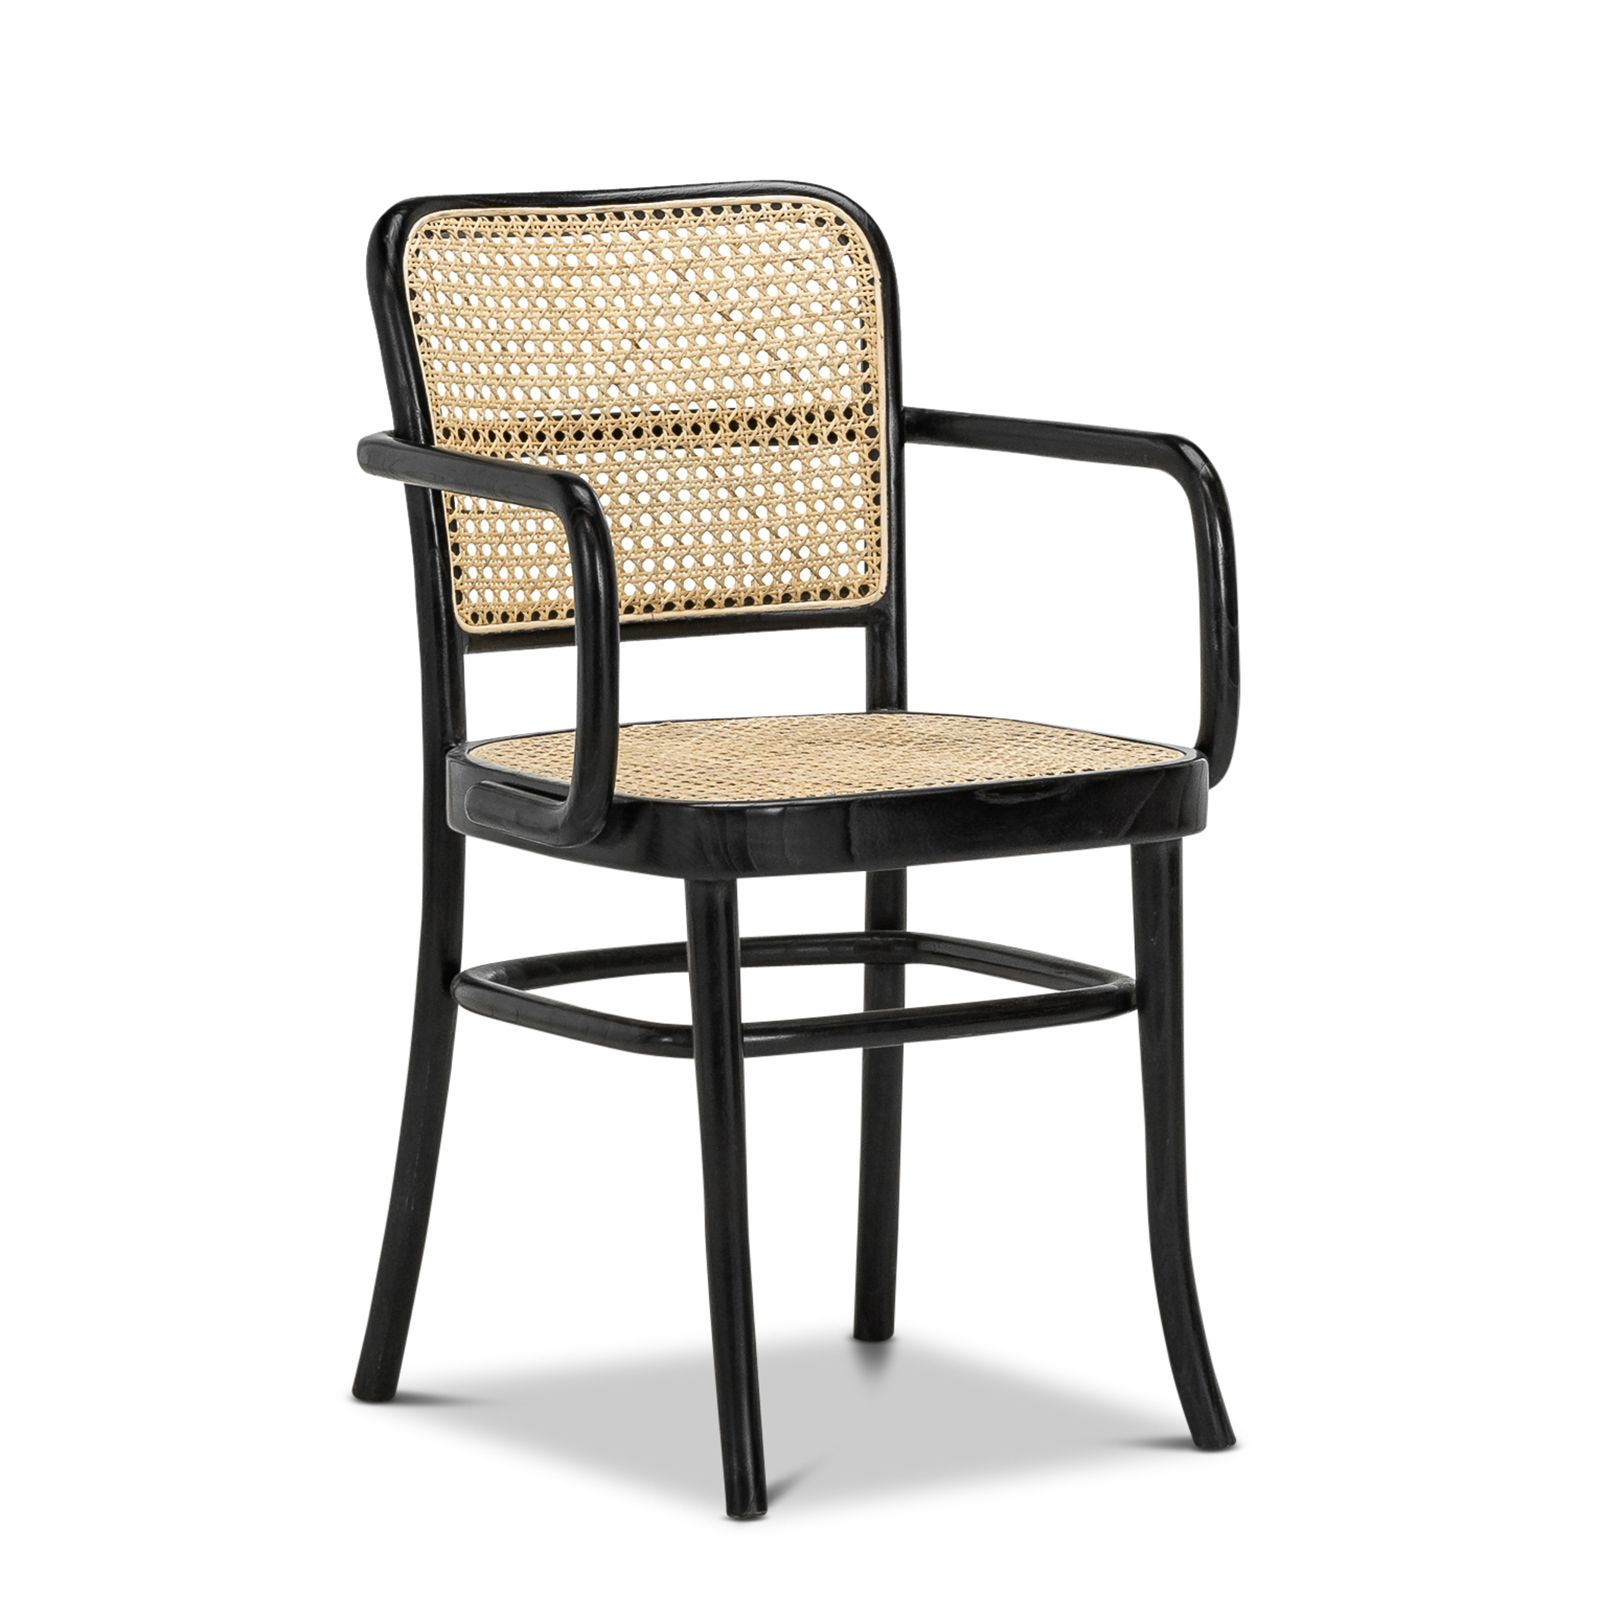 Prague Cane Bentwood Side Chair Natural